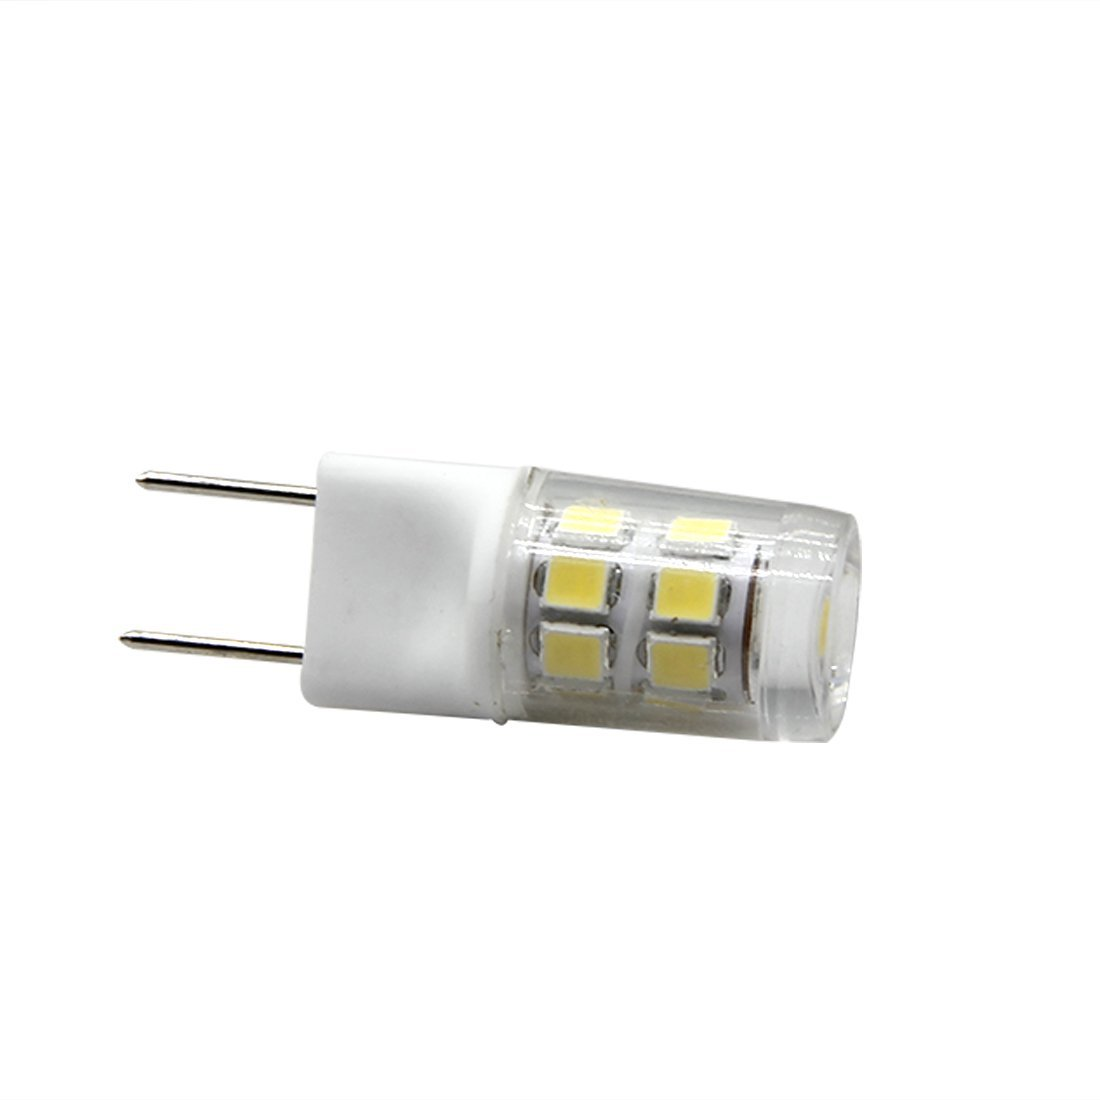 10pcs Led G8 2W Bi-pins bulb 6000k 120v 20w 25w xenon halogen lamp Equivalent Non-Dimmable for puck under cabinet light